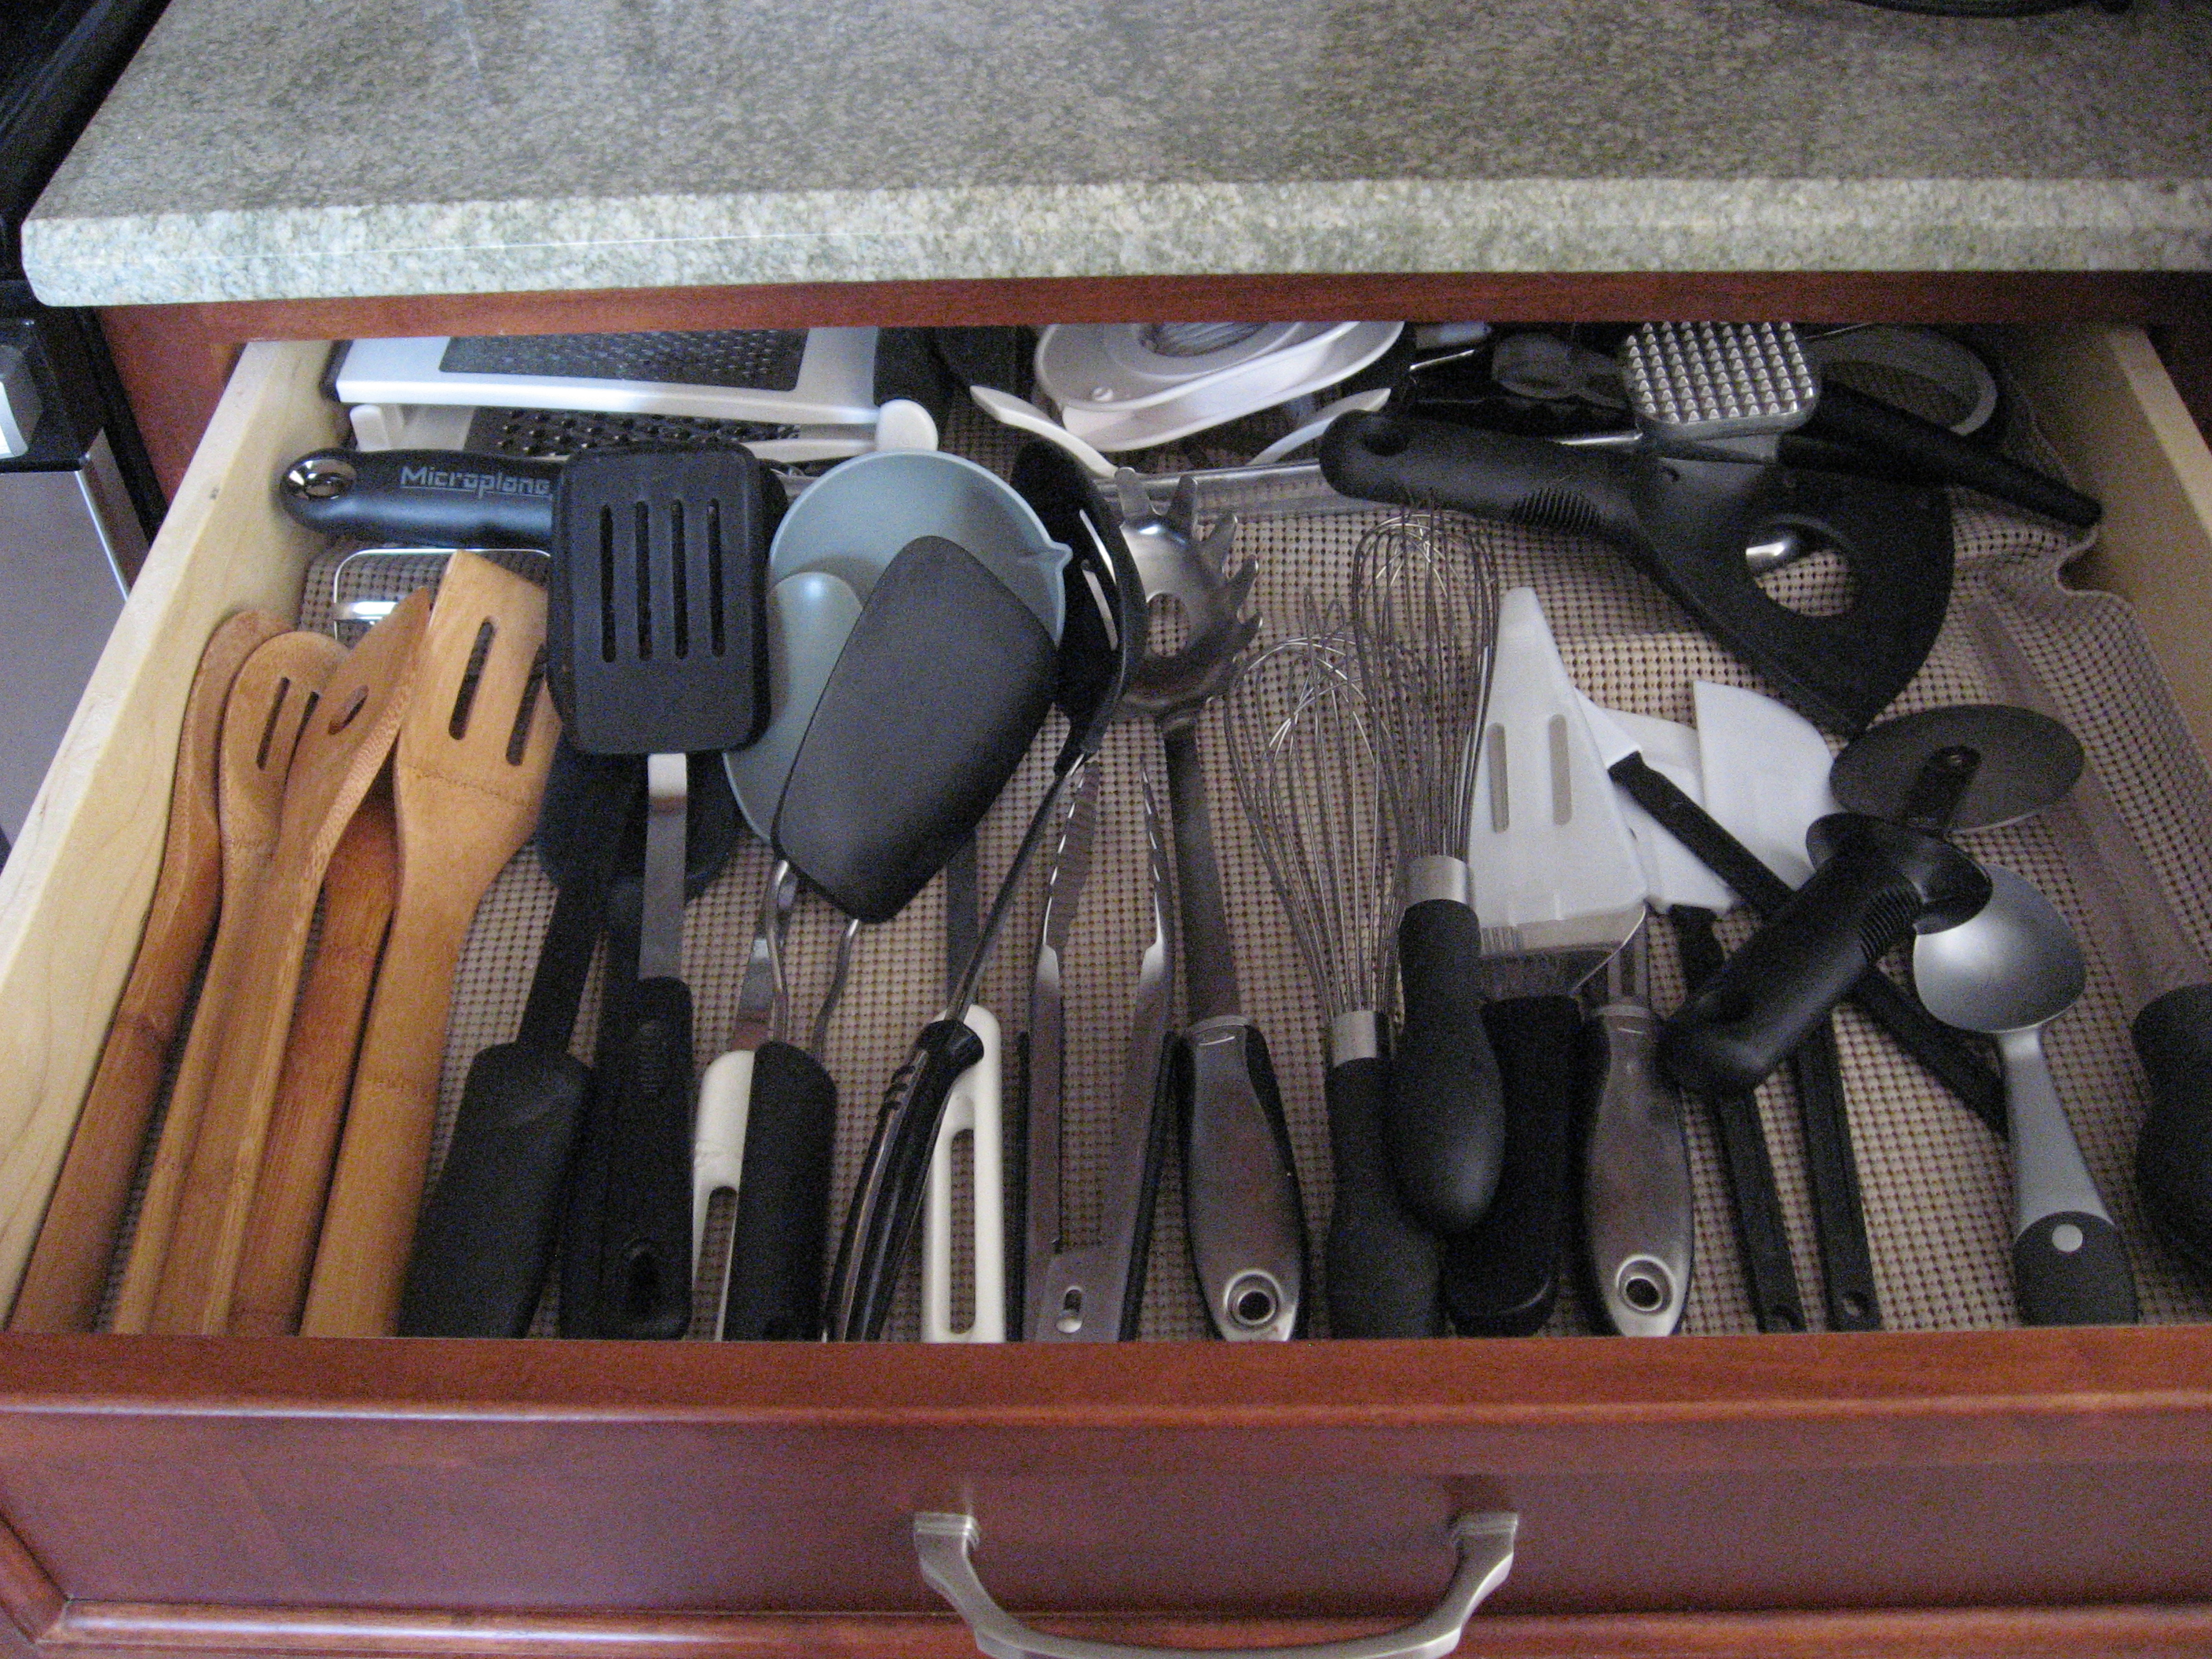 Kitchen Drawer Cooking Utensil Organization